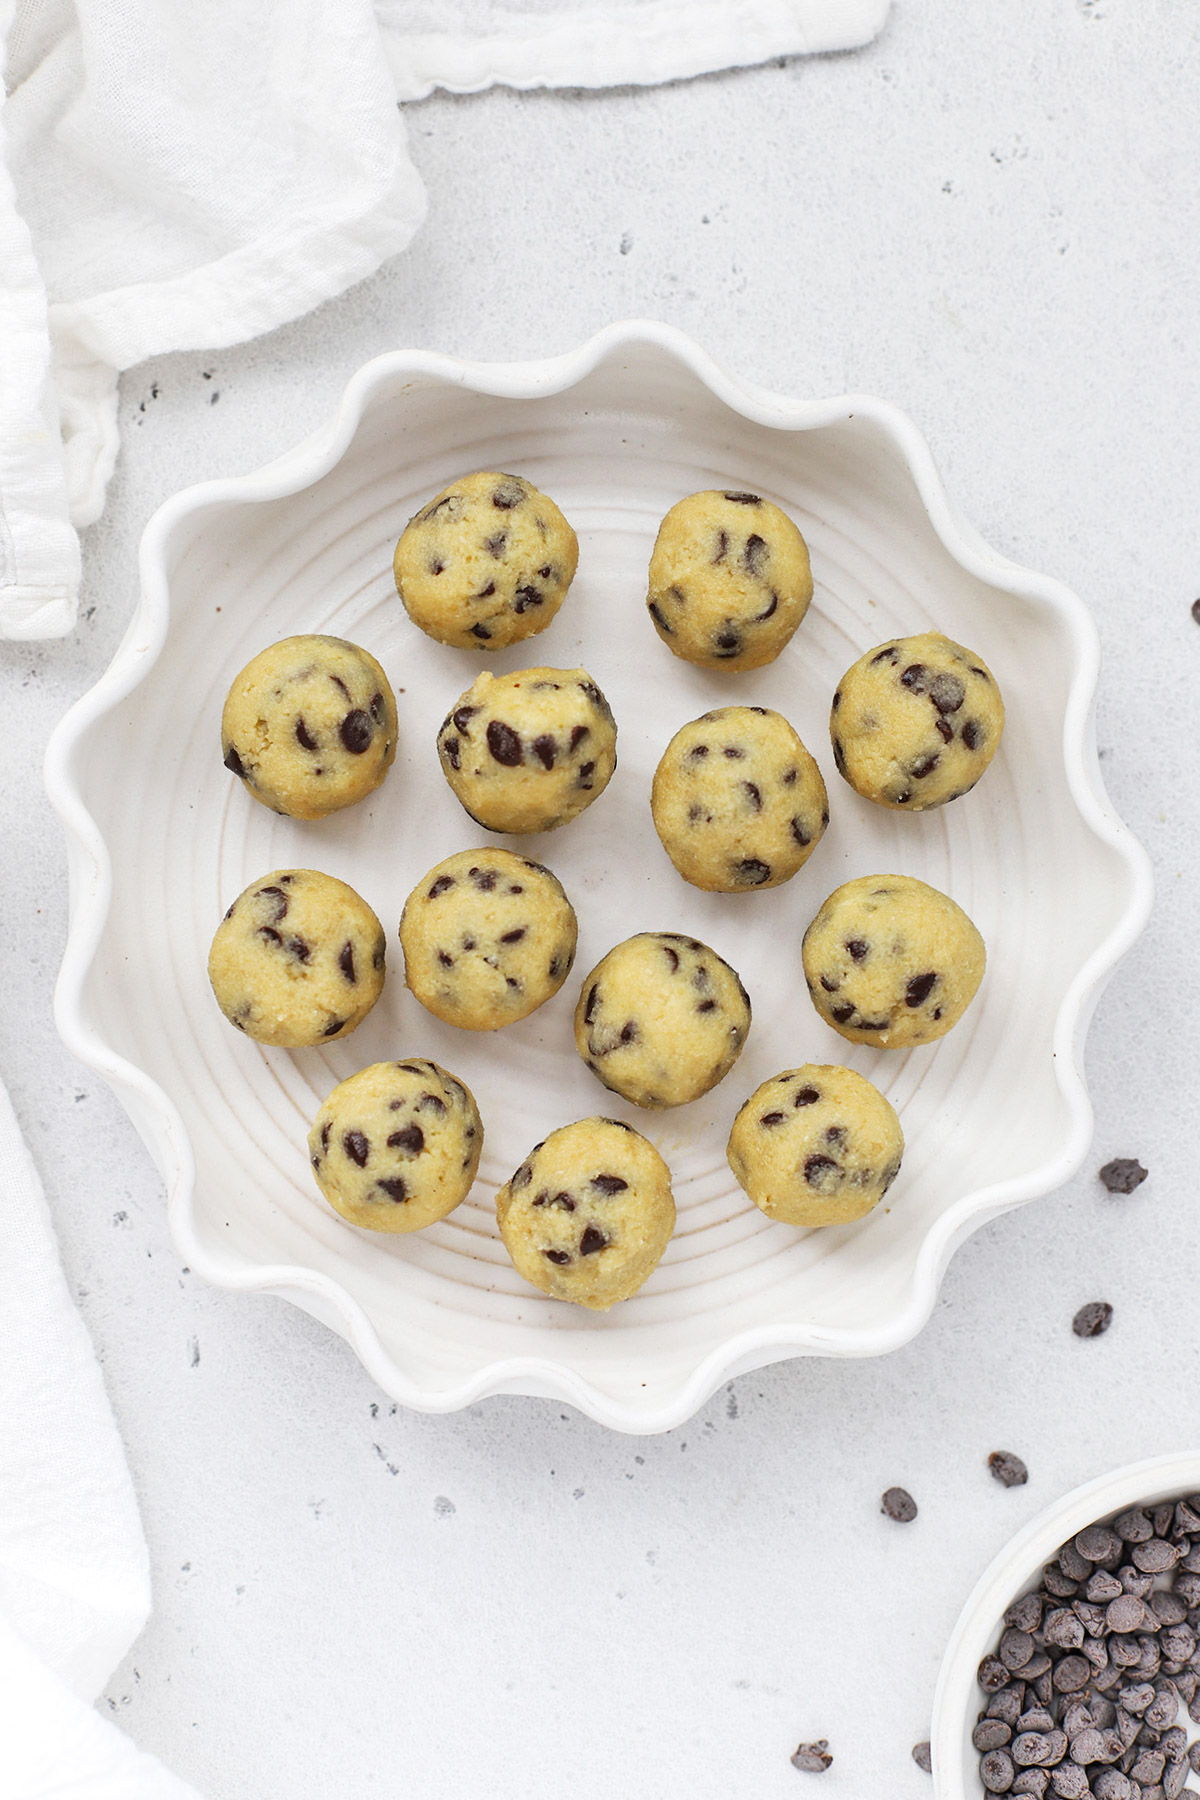 Overhead view of a plate of healthy edible cookie dough bites